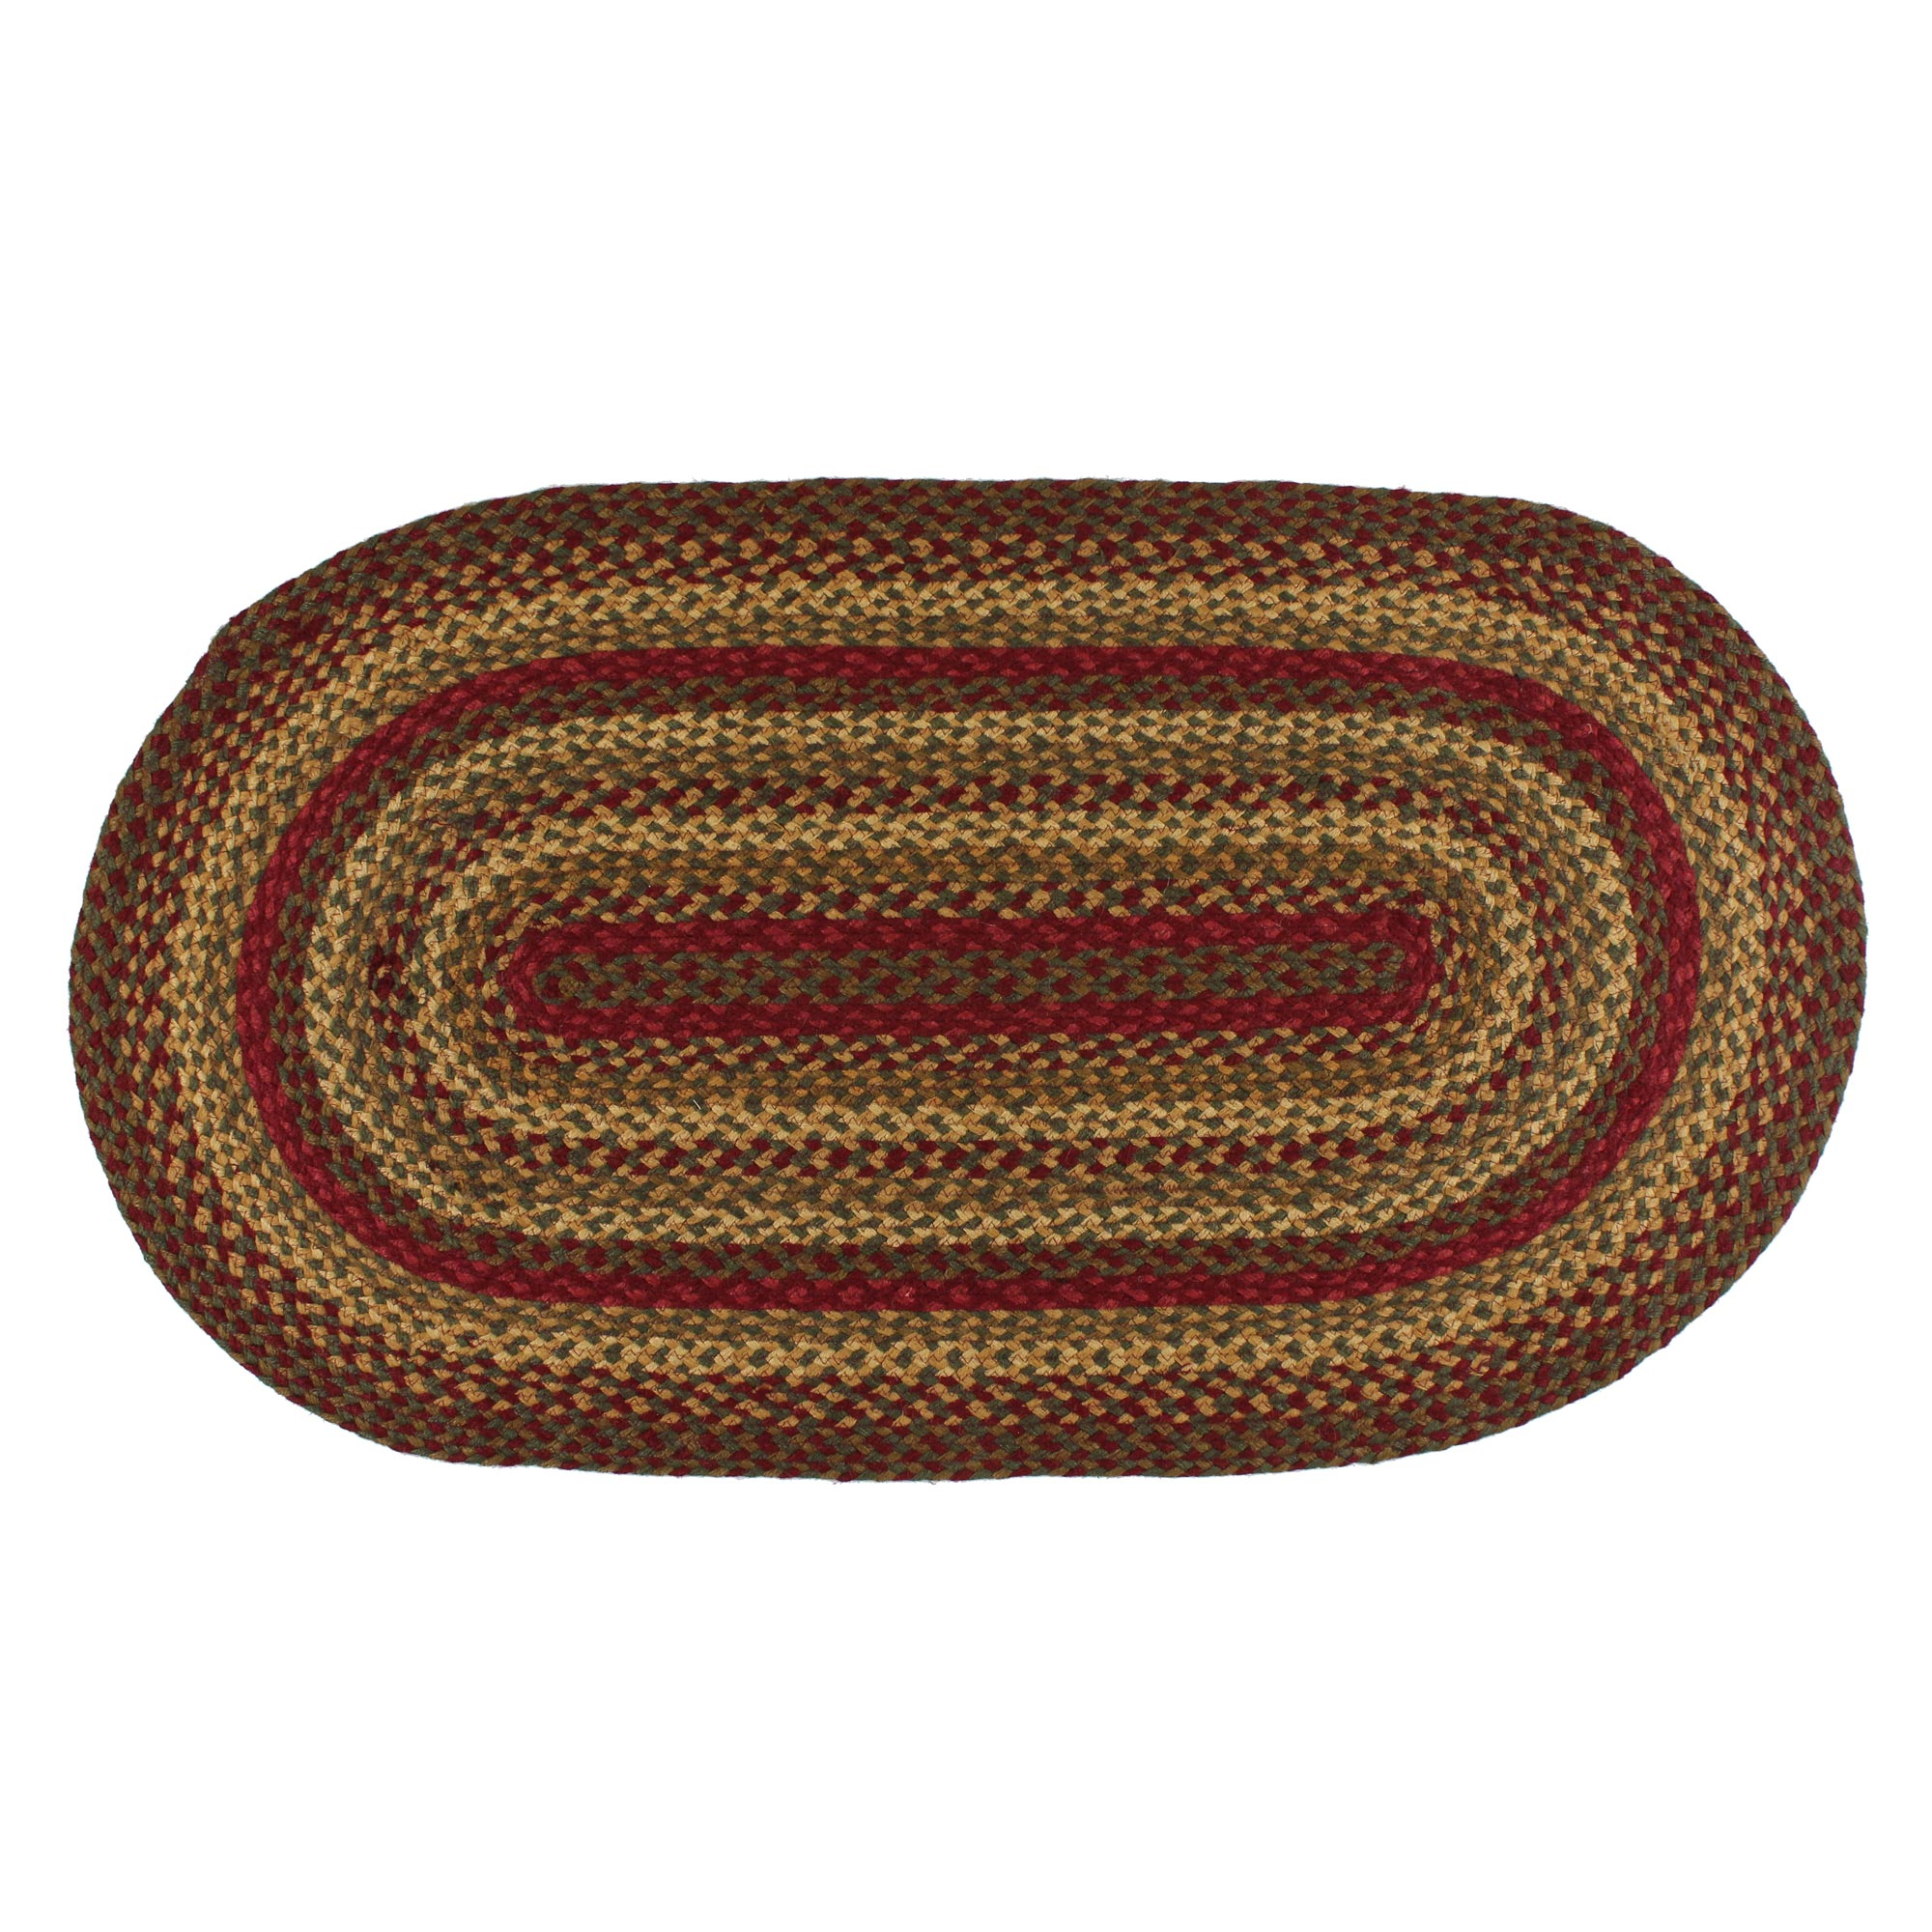 braided rugs red and green braided jute area rug country rustic oval rectangle YRZYRCX